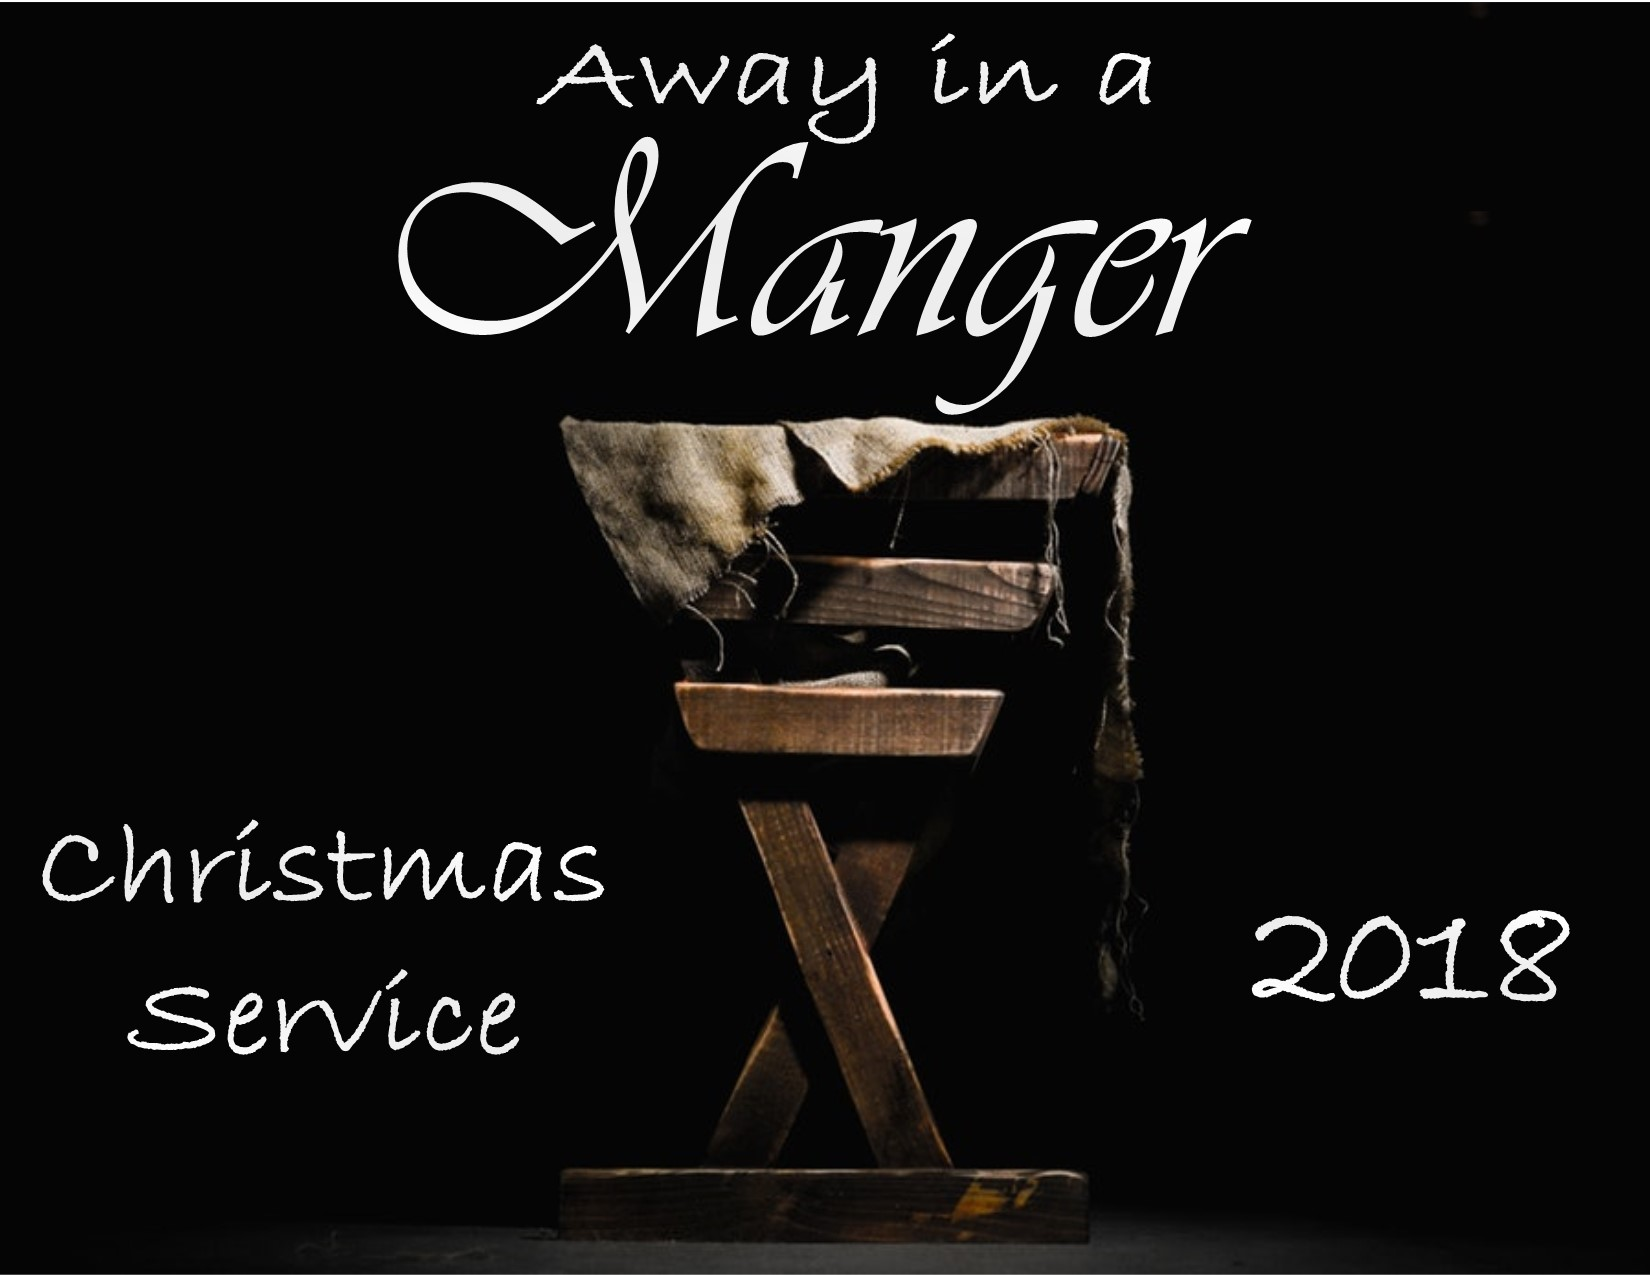 Christmas Day Service - Away In A Manger